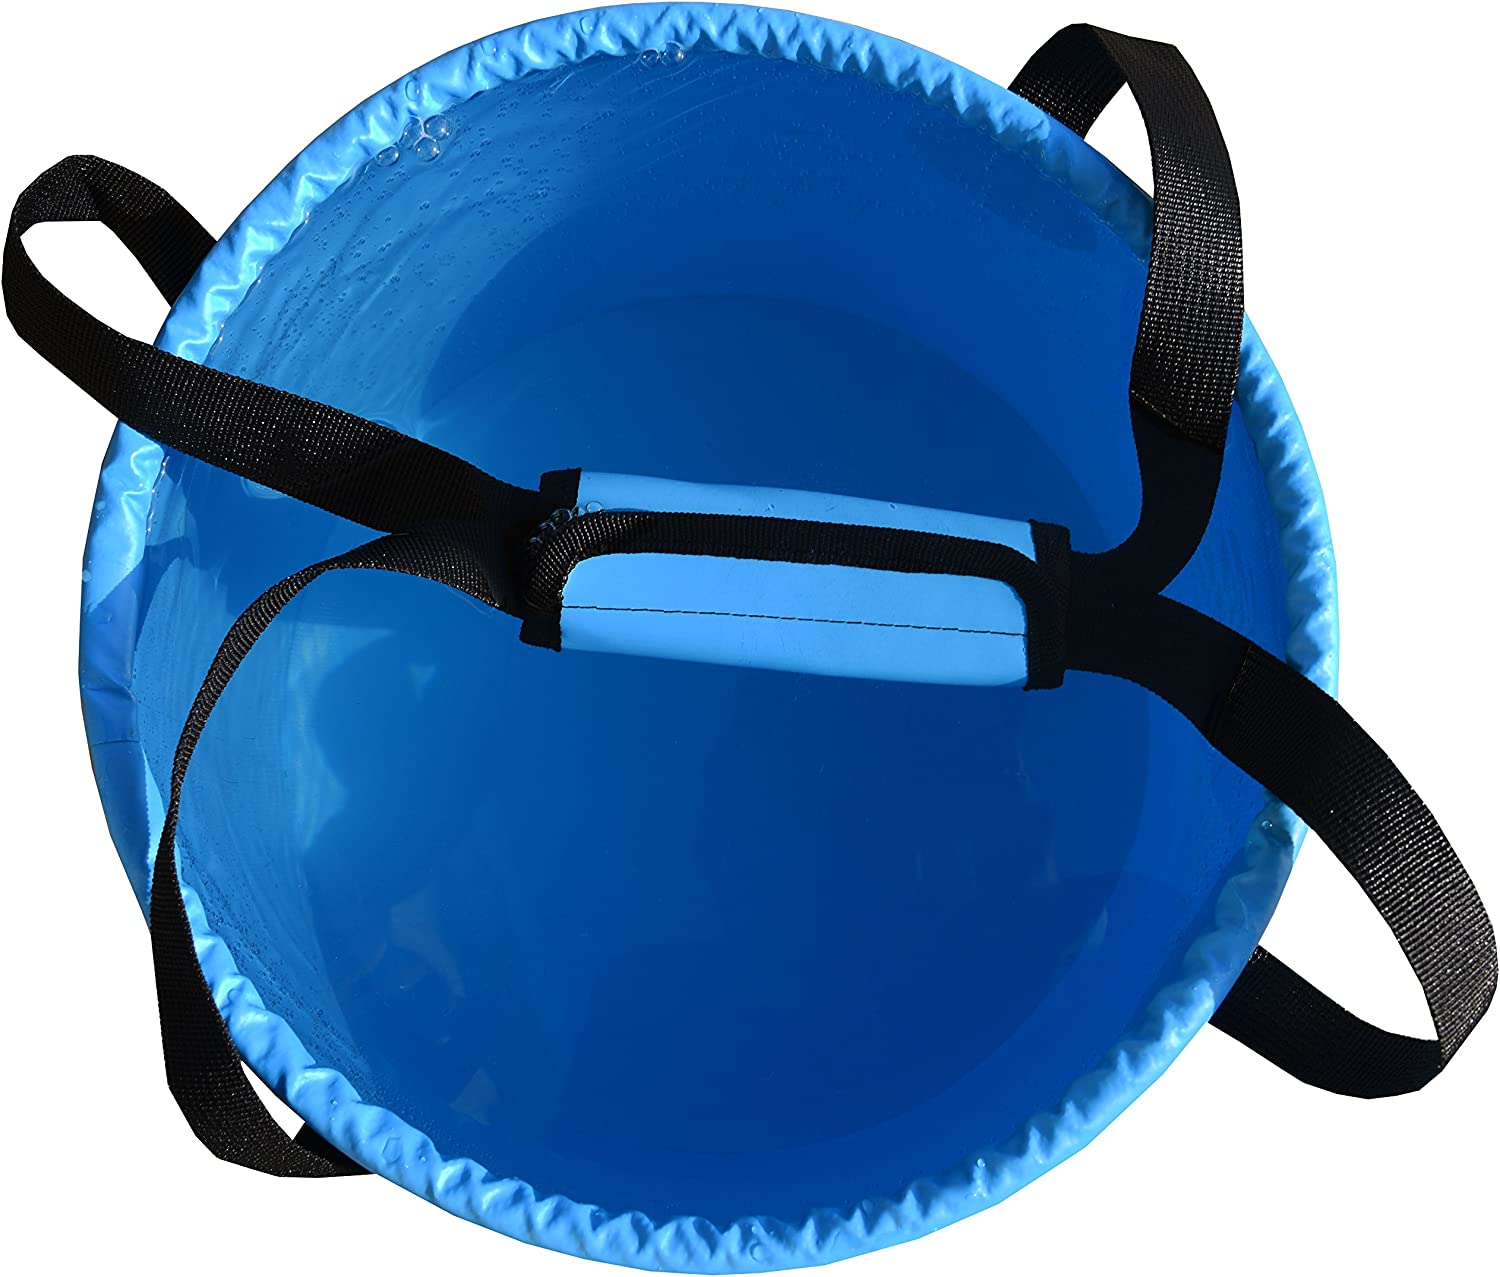 Freegrace Premium Collapsible Bucket Compact Portable Folding Water Container Includes Handy Tool Mesh Pocket Lightweight /& Durable